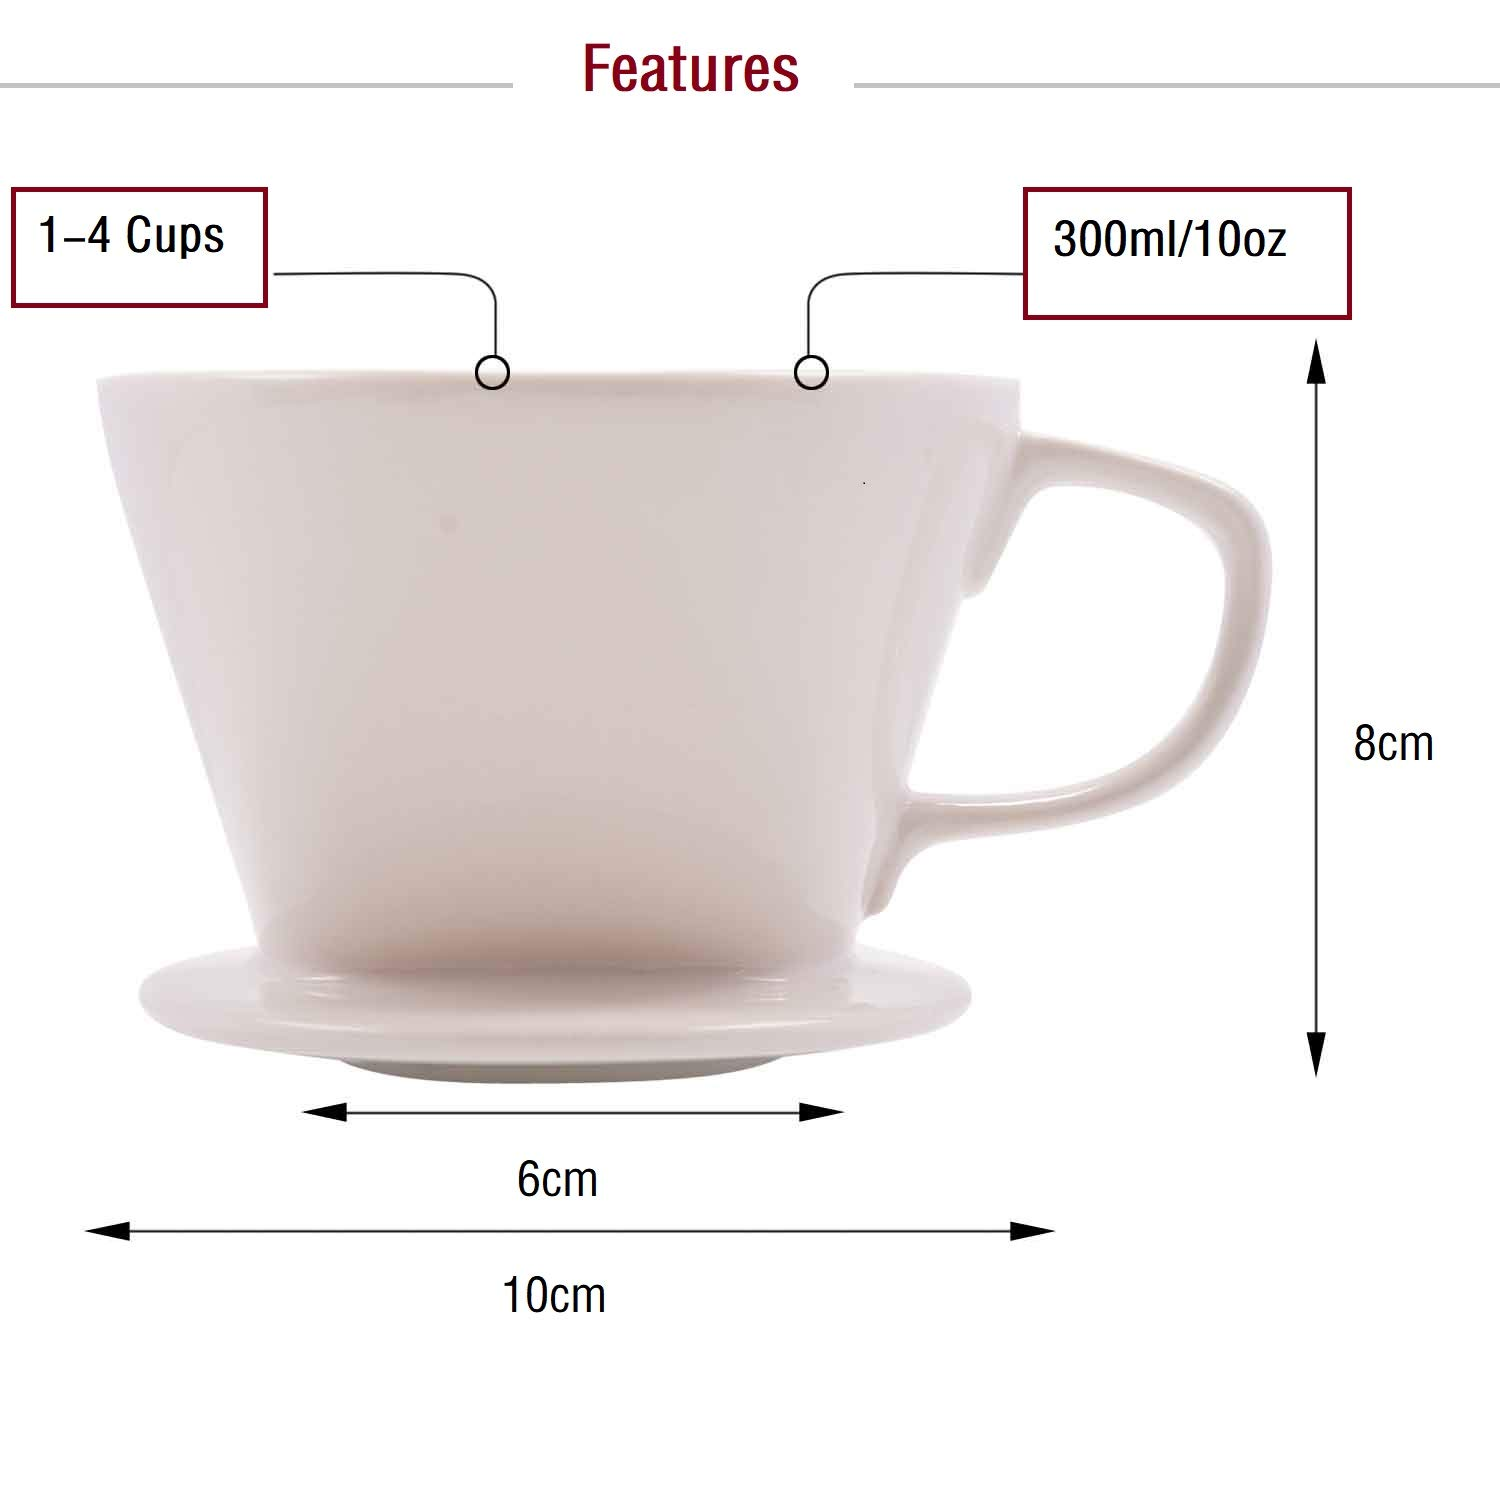 Ceramic Porcelain Pour Over Coffee Dripper Filter Holder Manual Hand Coffee Dripper Cone Reusable for No 2 or 4 Filters with Bonus Disposable Filters White by SOPRETY